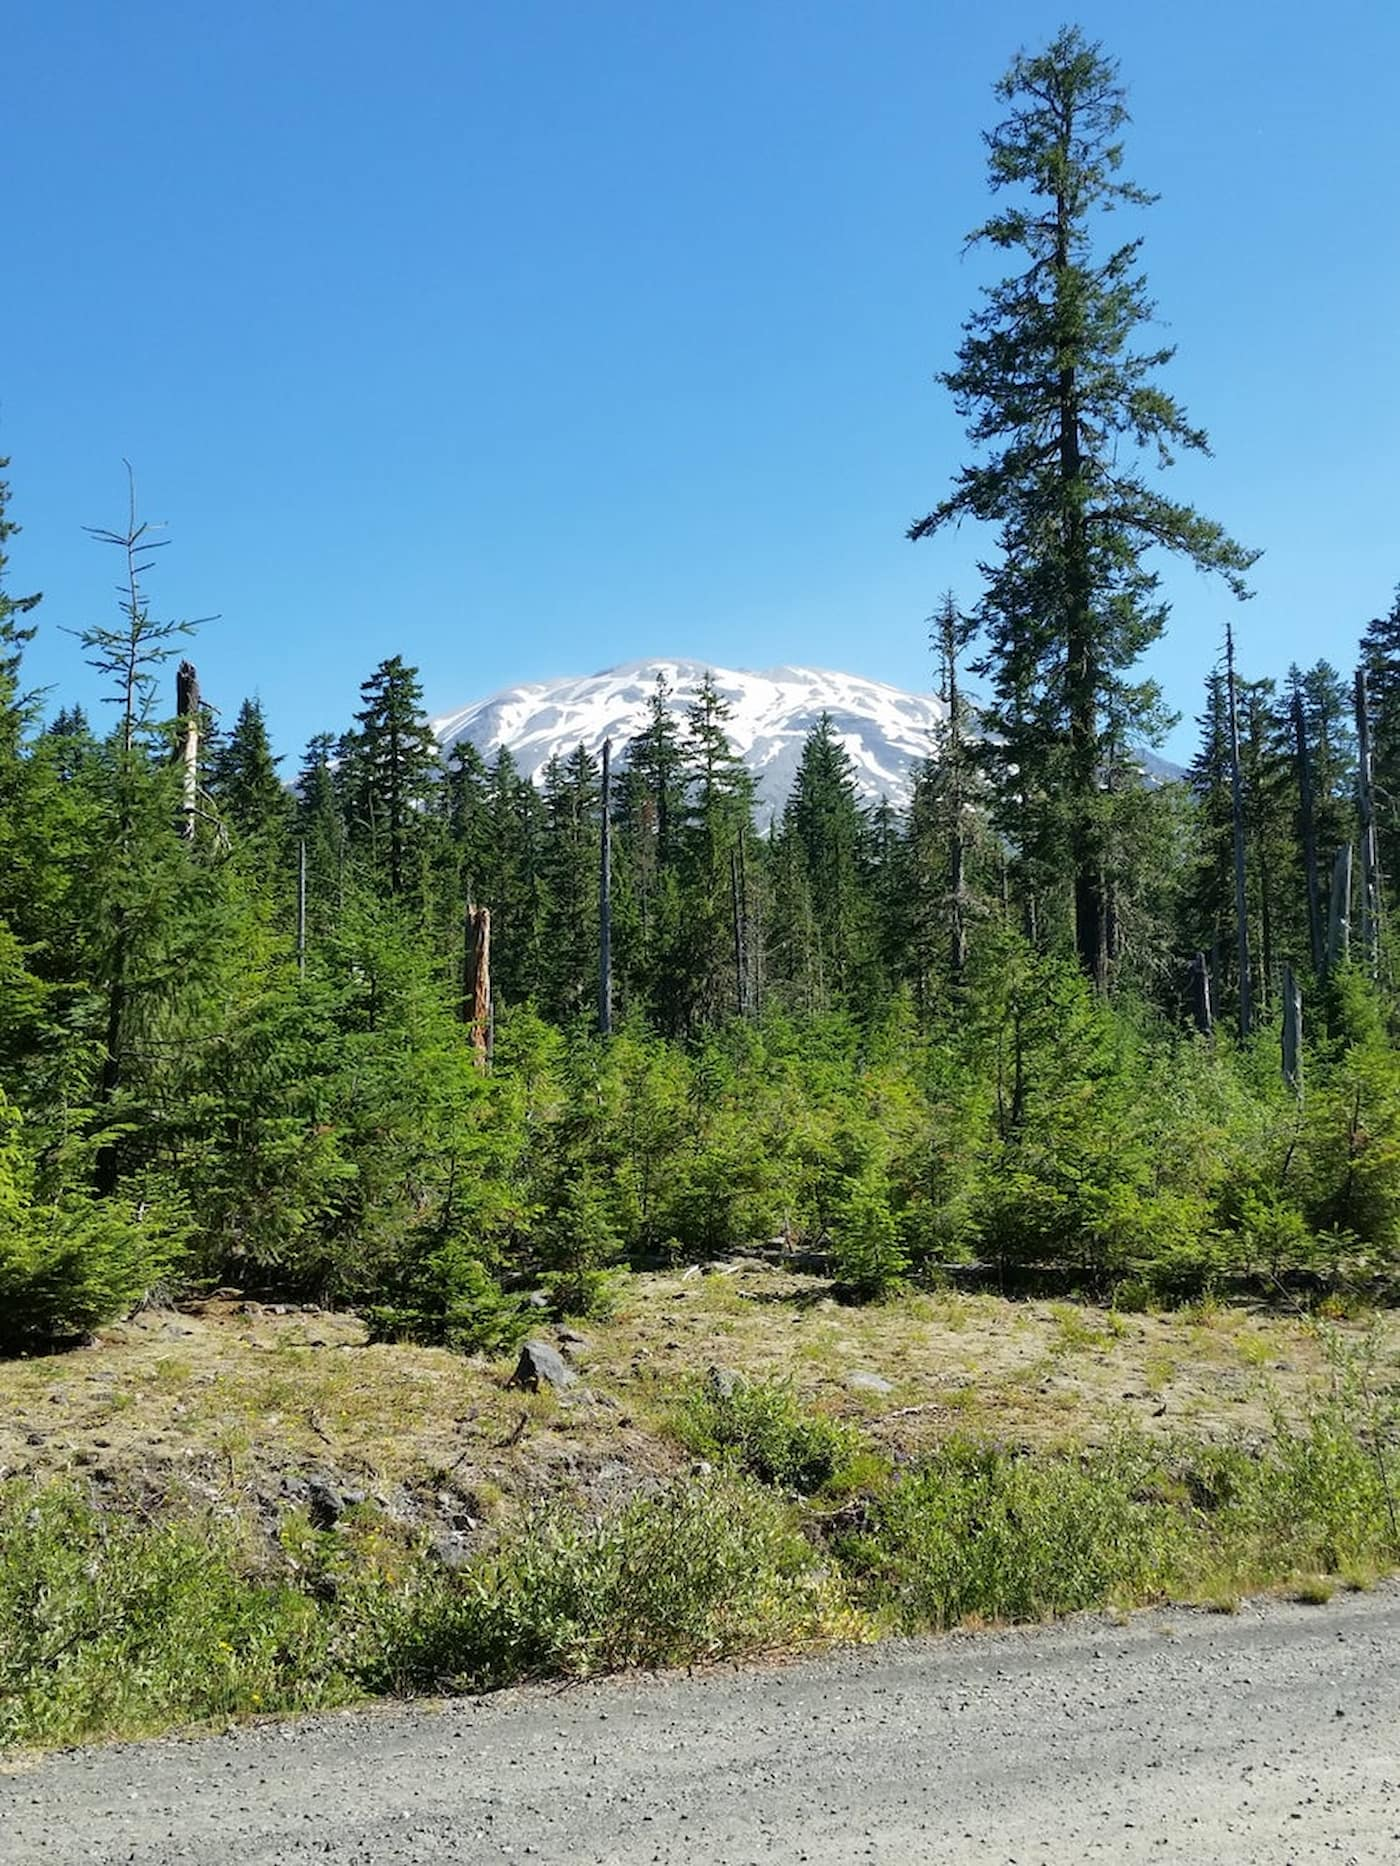 White capped Mt. St. Helens peaking out from above an evergreen forest.